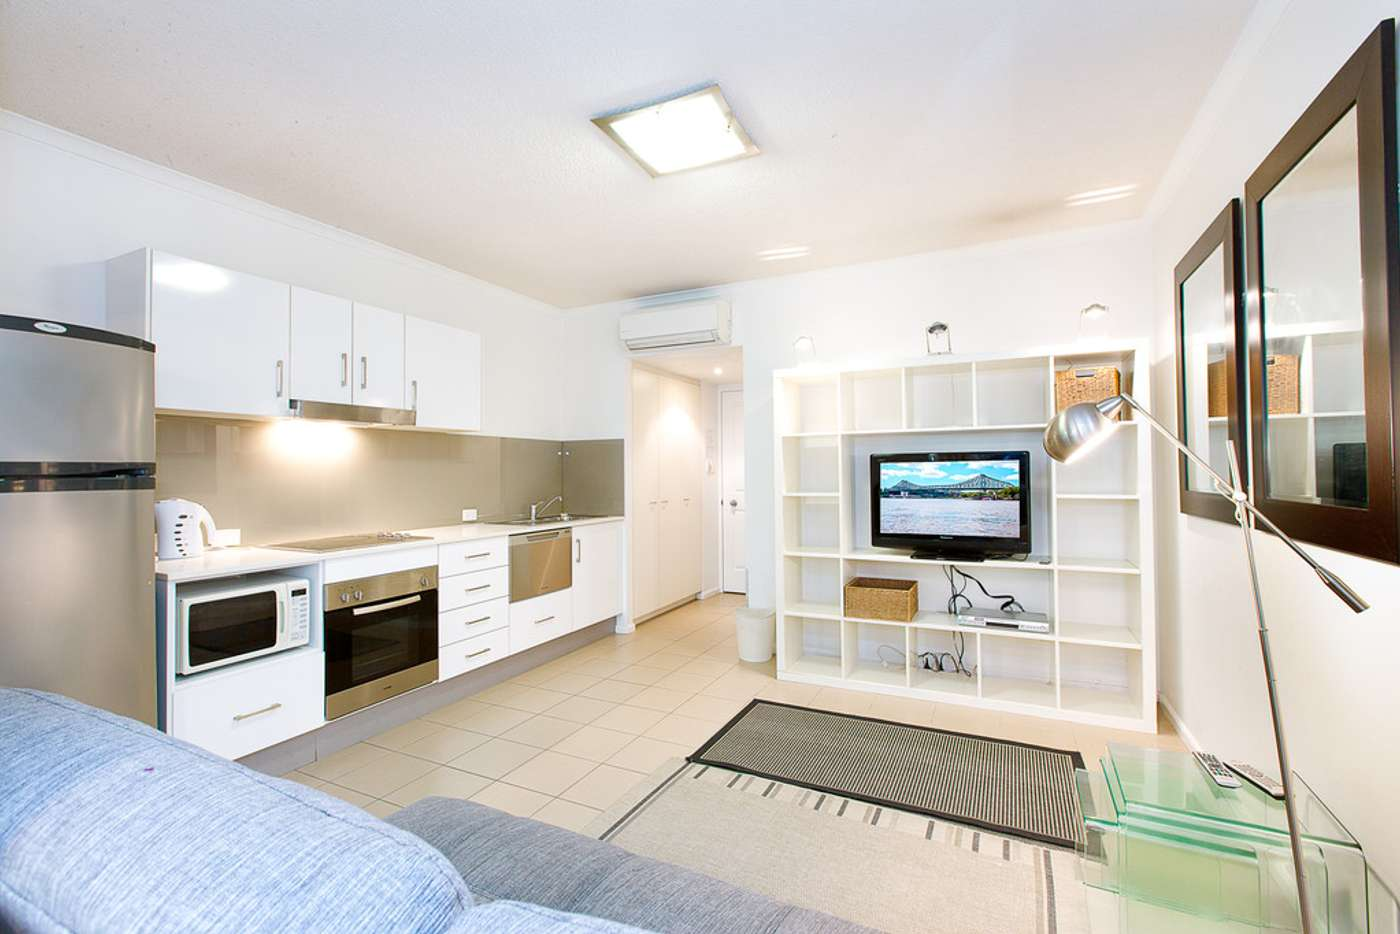 Main view of Homely apartment listing, 85 Deakin Street,,, Kangaroo Point QLD 4169